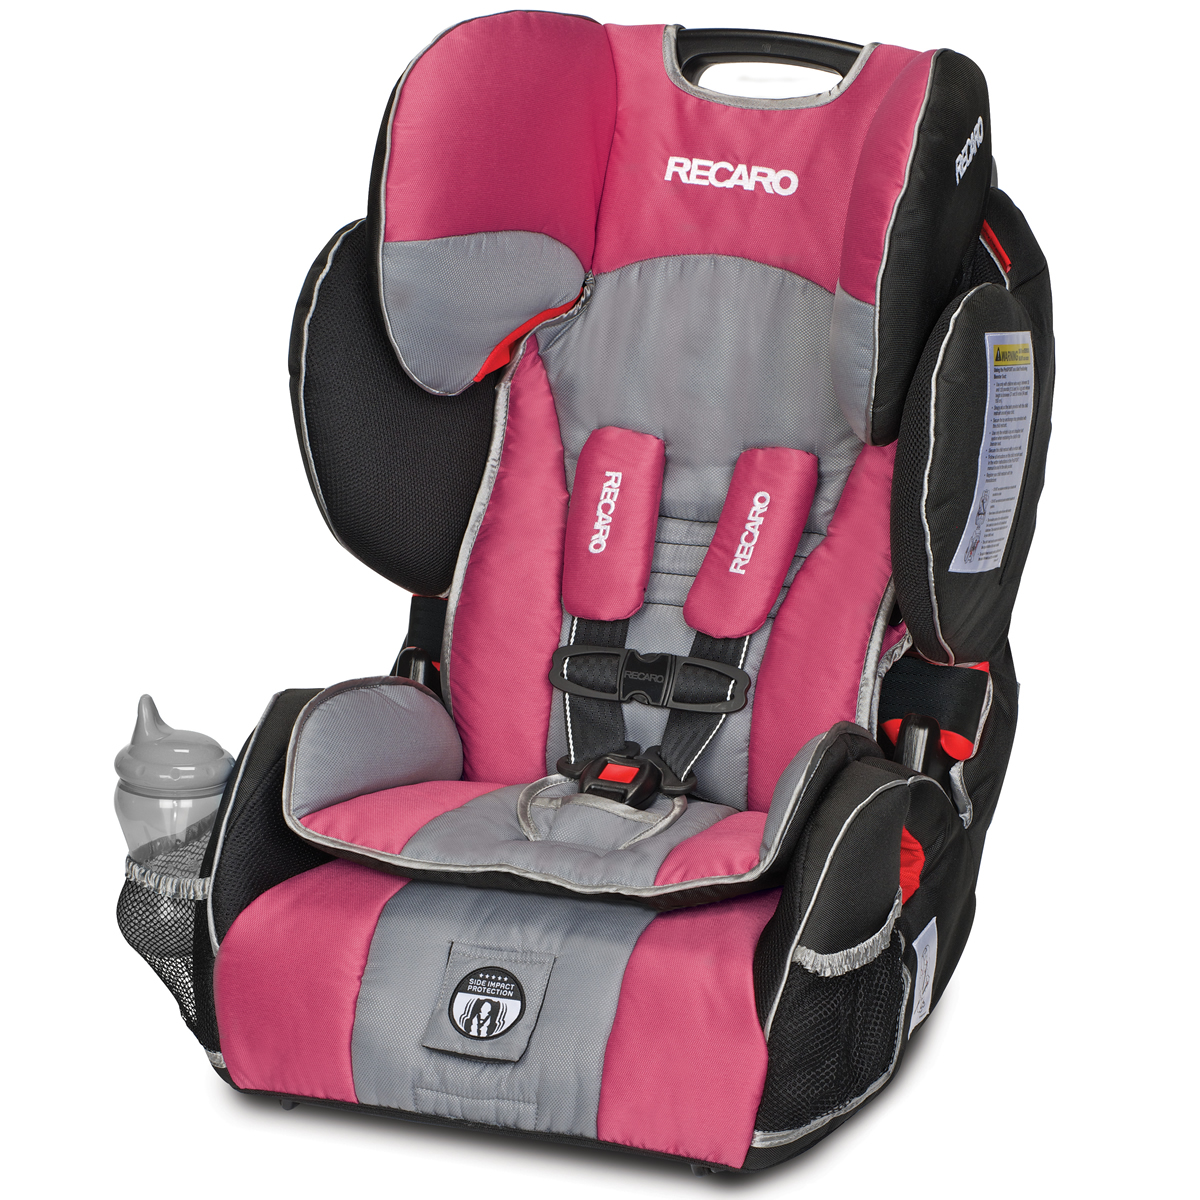 recaro performance sport combination harness to booster car seat rose